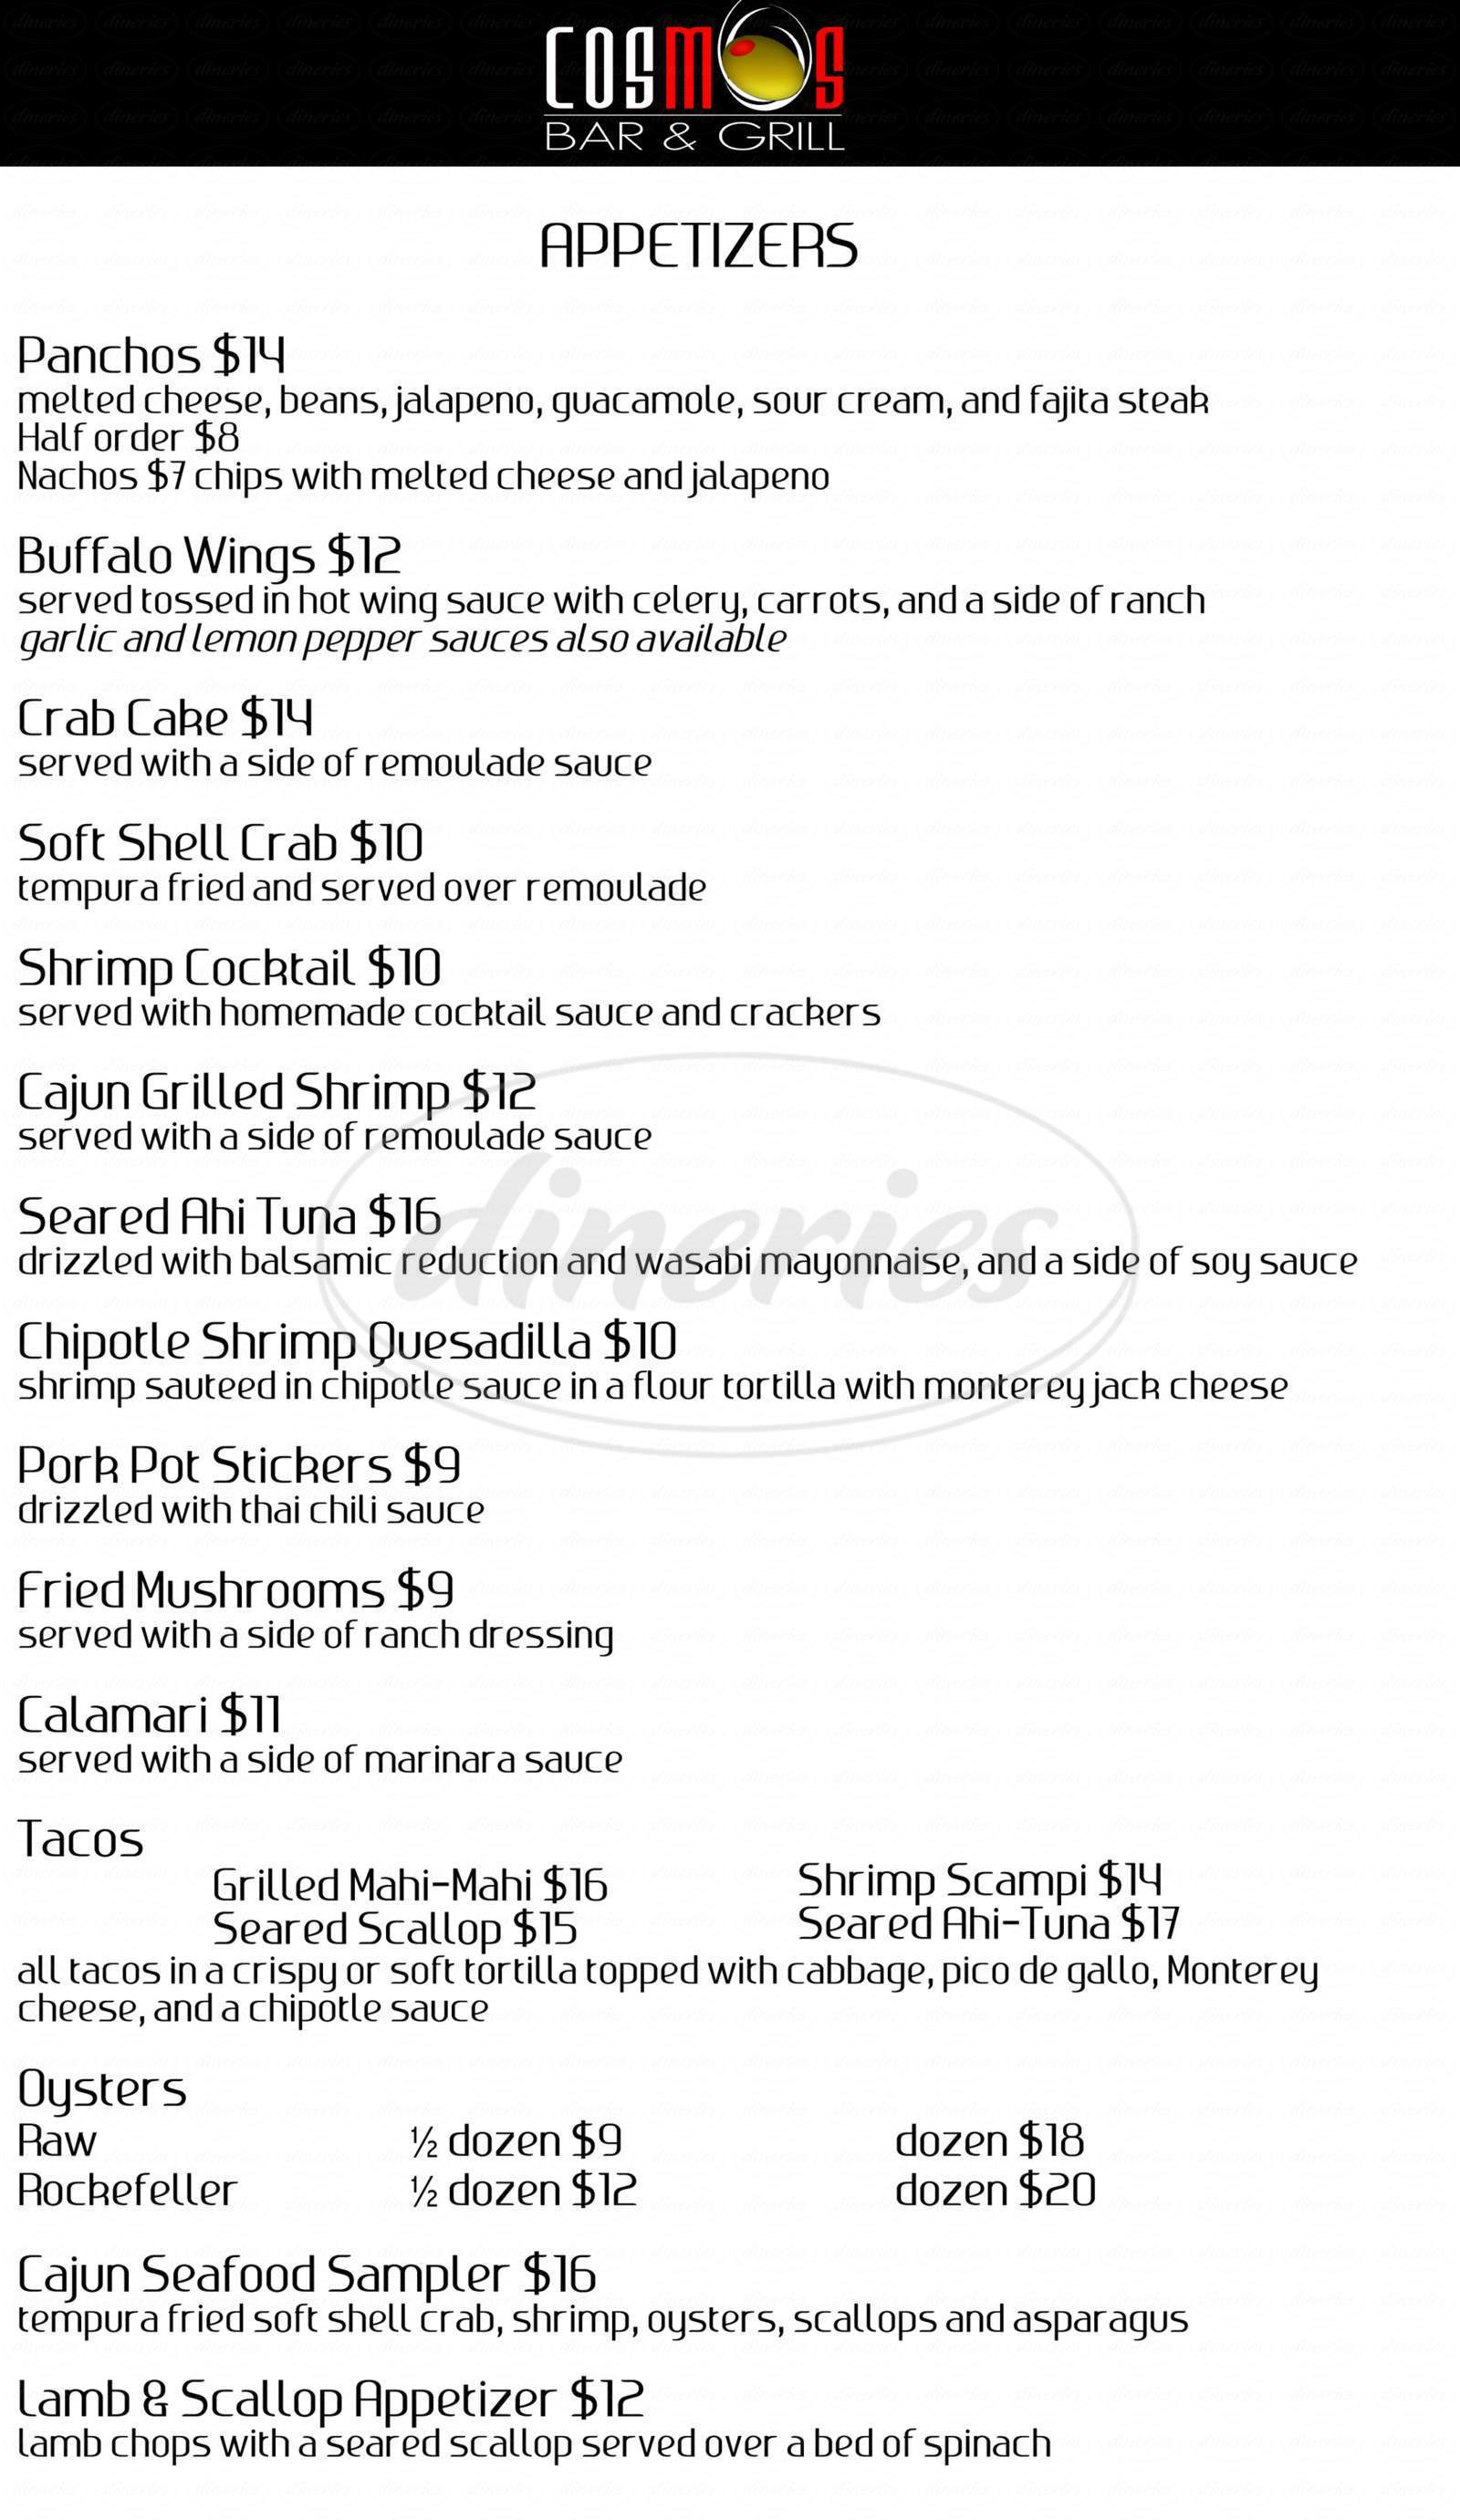 menu for Cosmos Bar and Grill